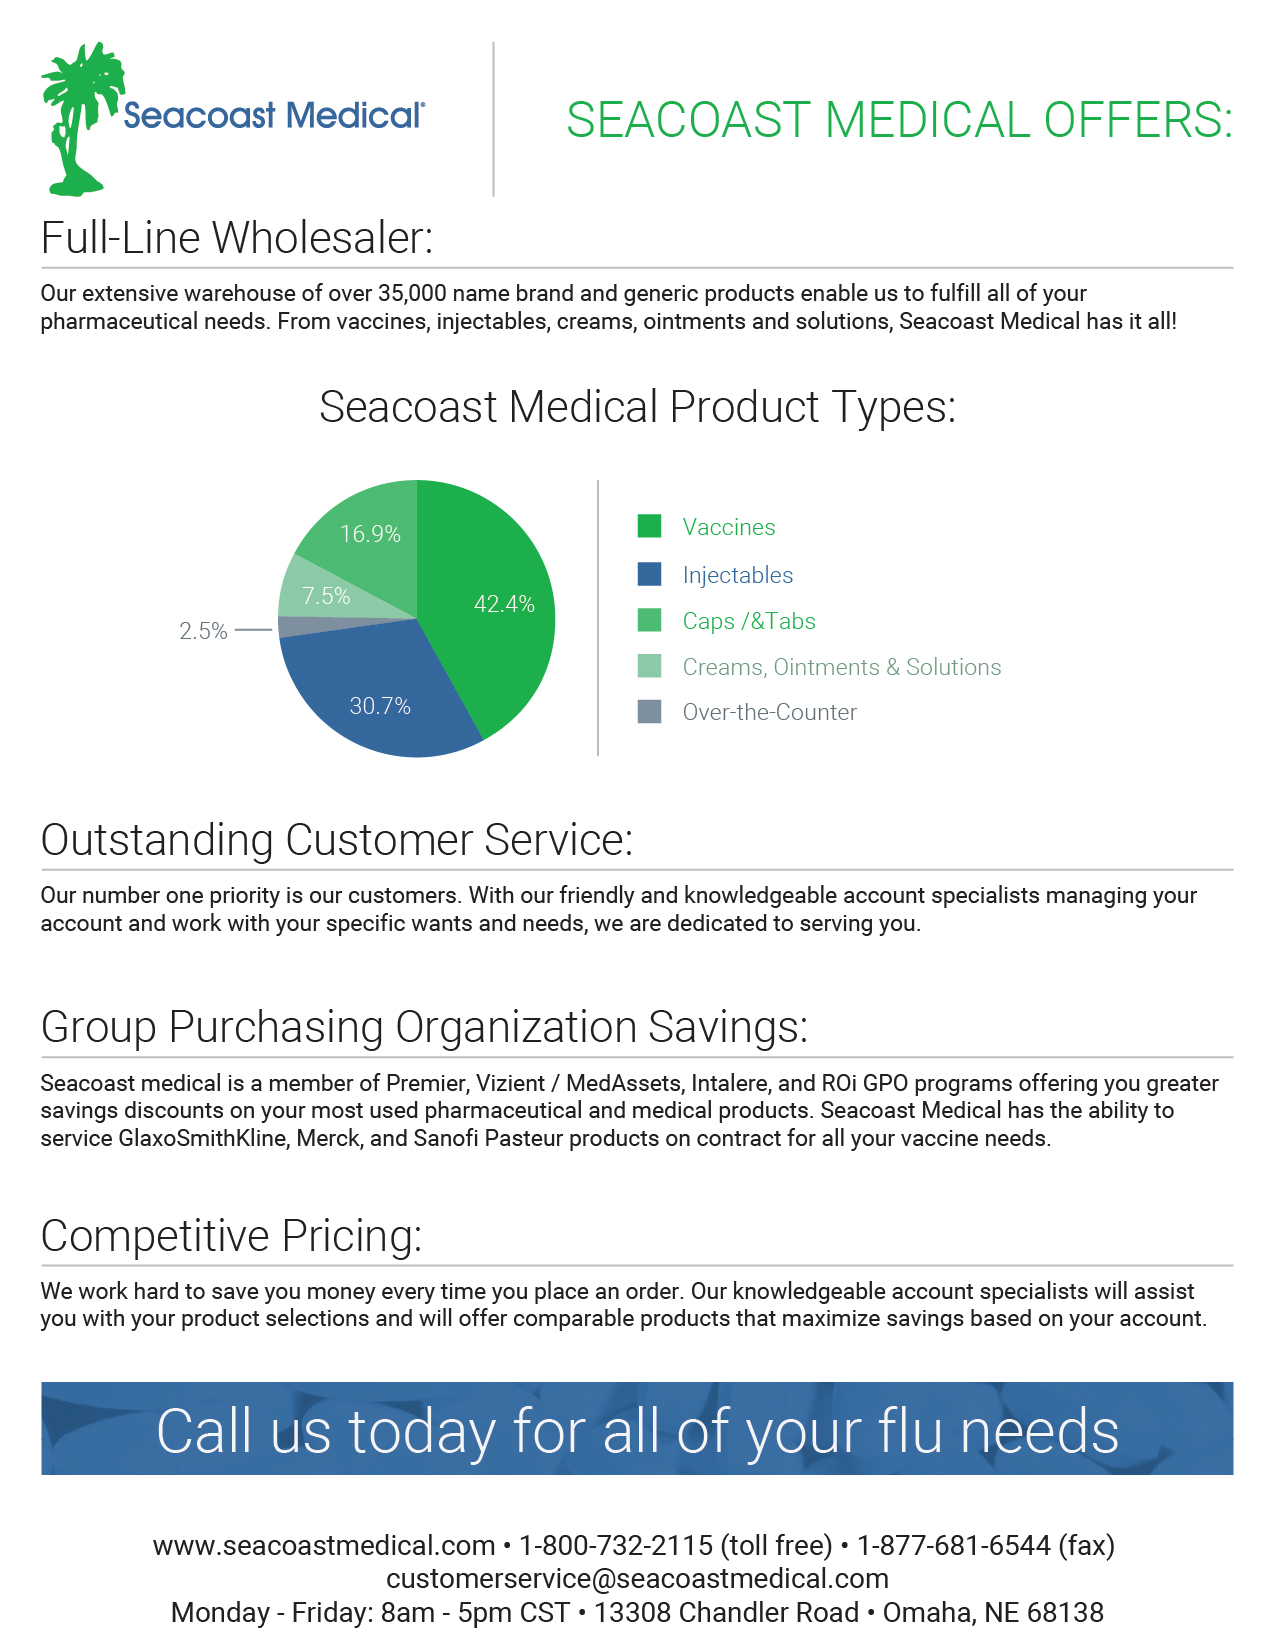 Seacoast medical offers: -